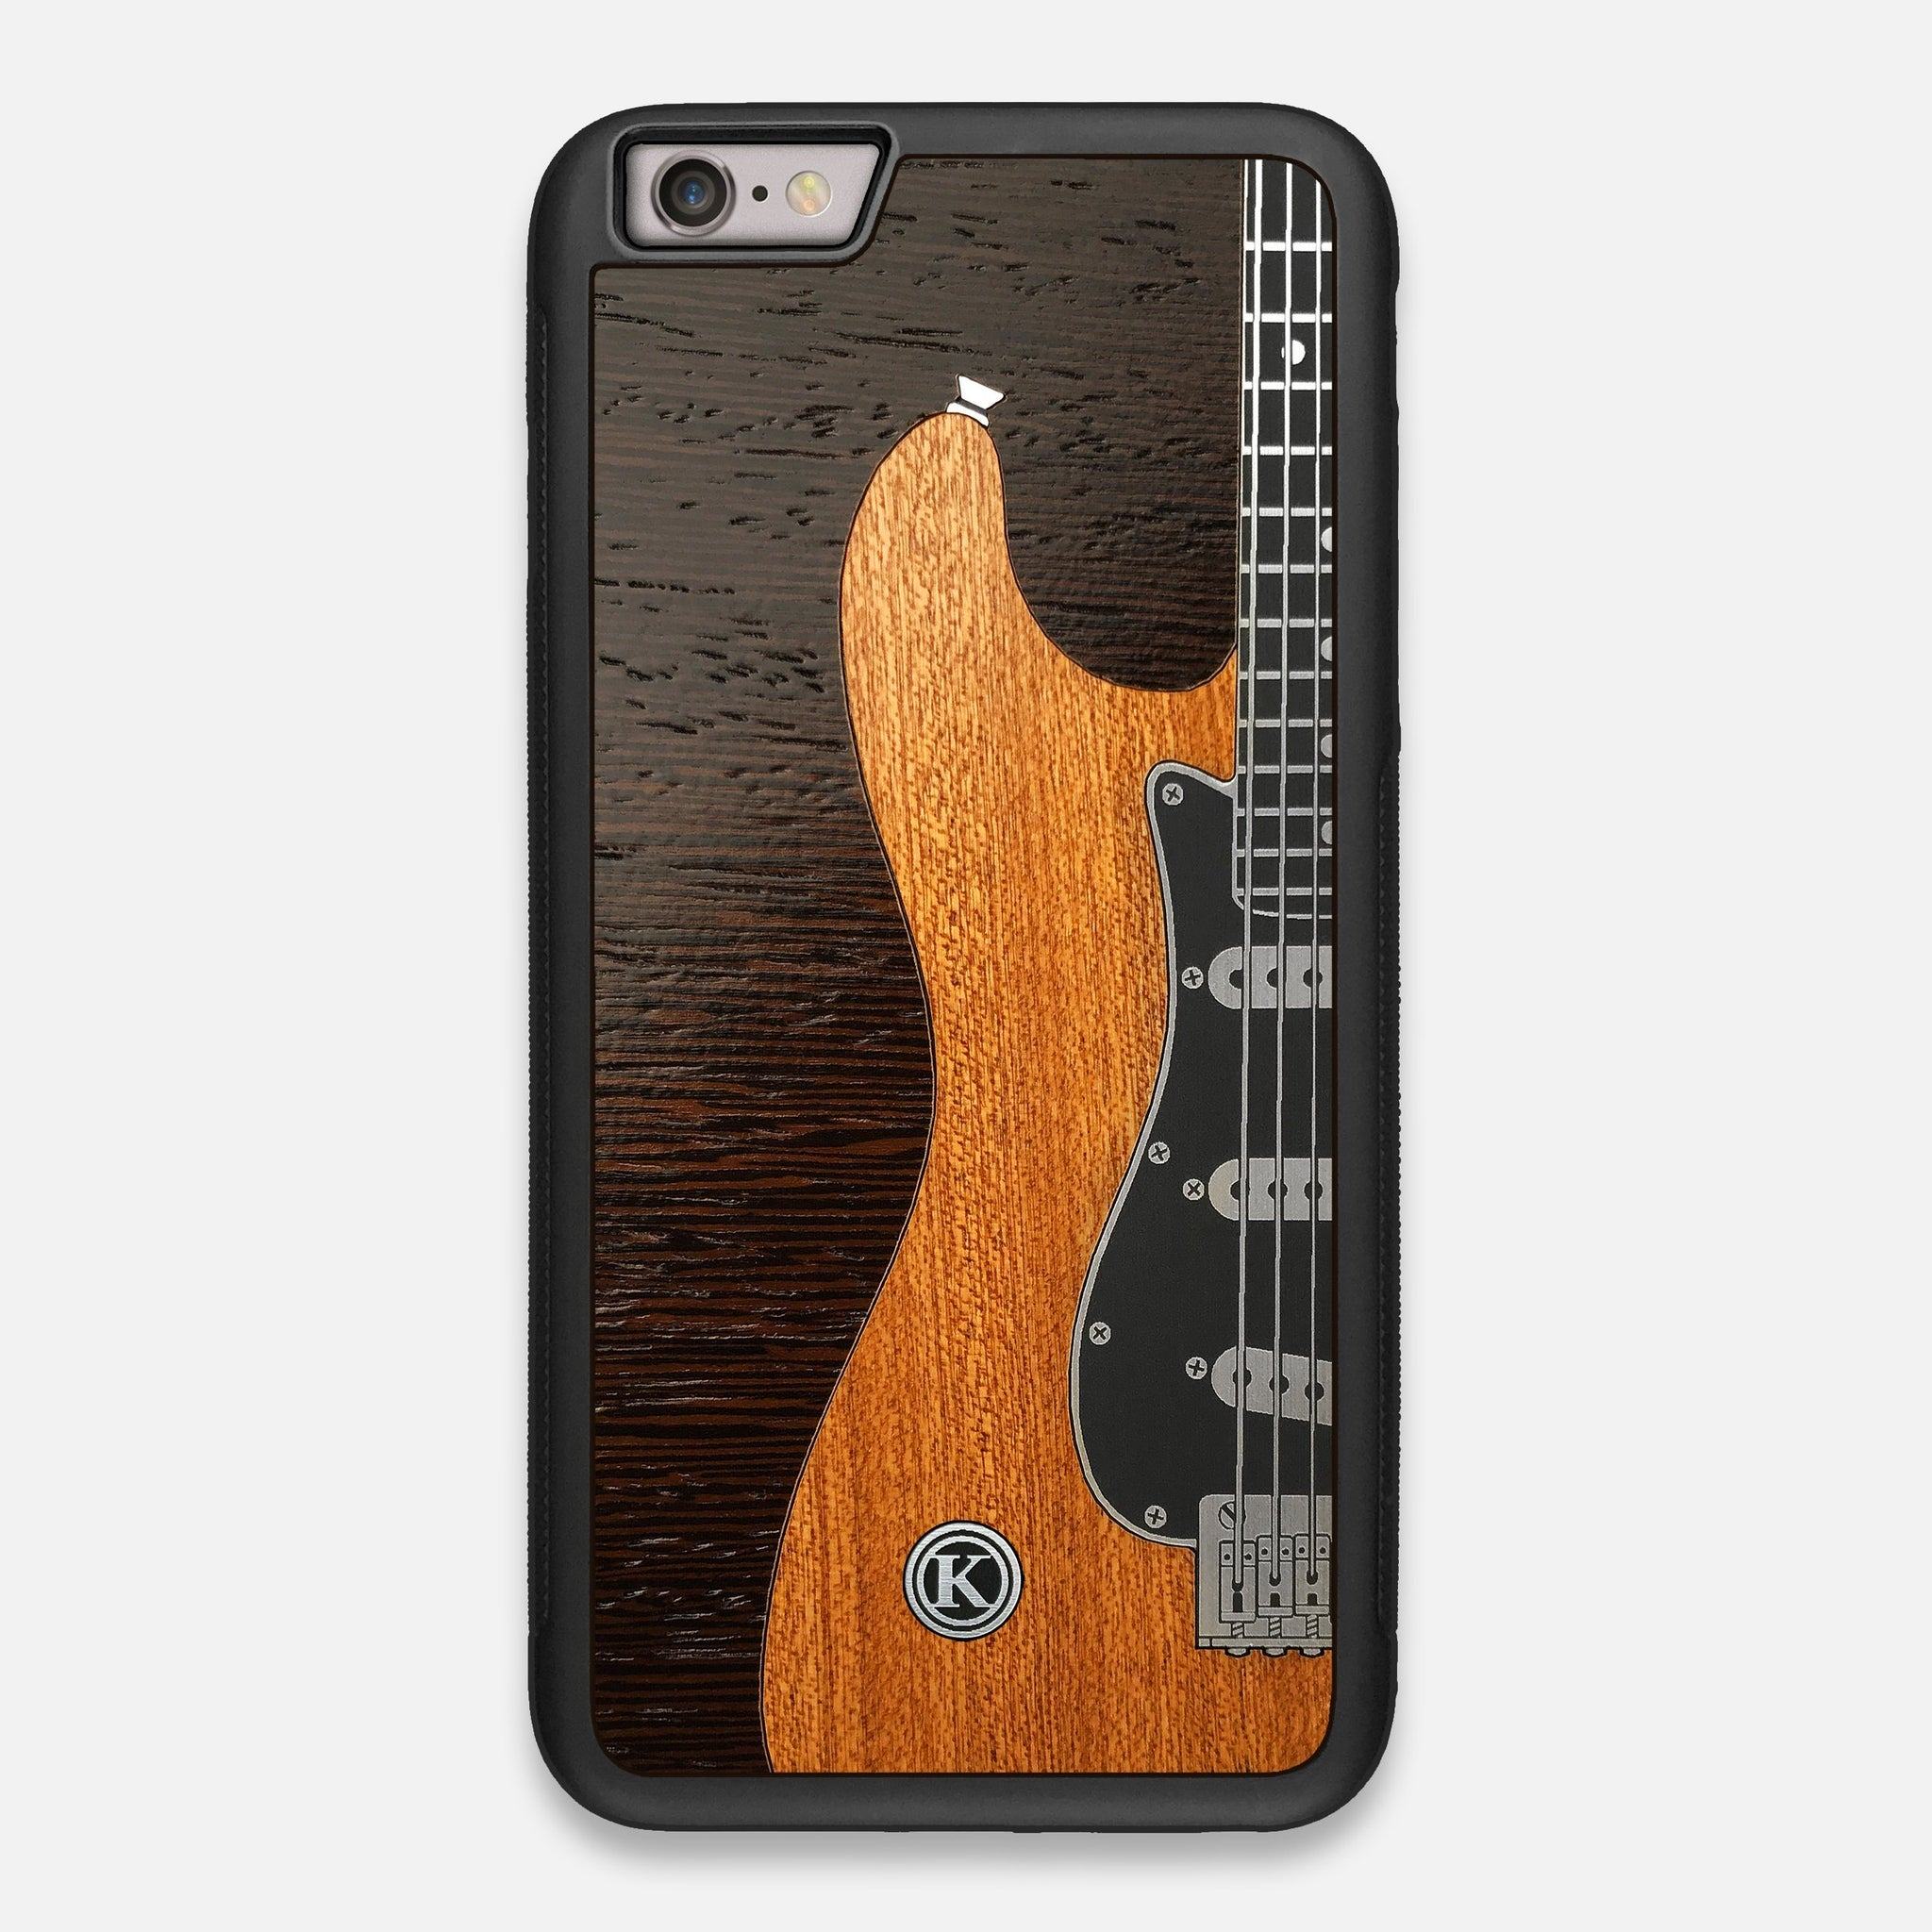 TPU/PC Sides of the Reverb Guitar Wood and Metallic  iPhone 6 Plus Case by Keyway Designs